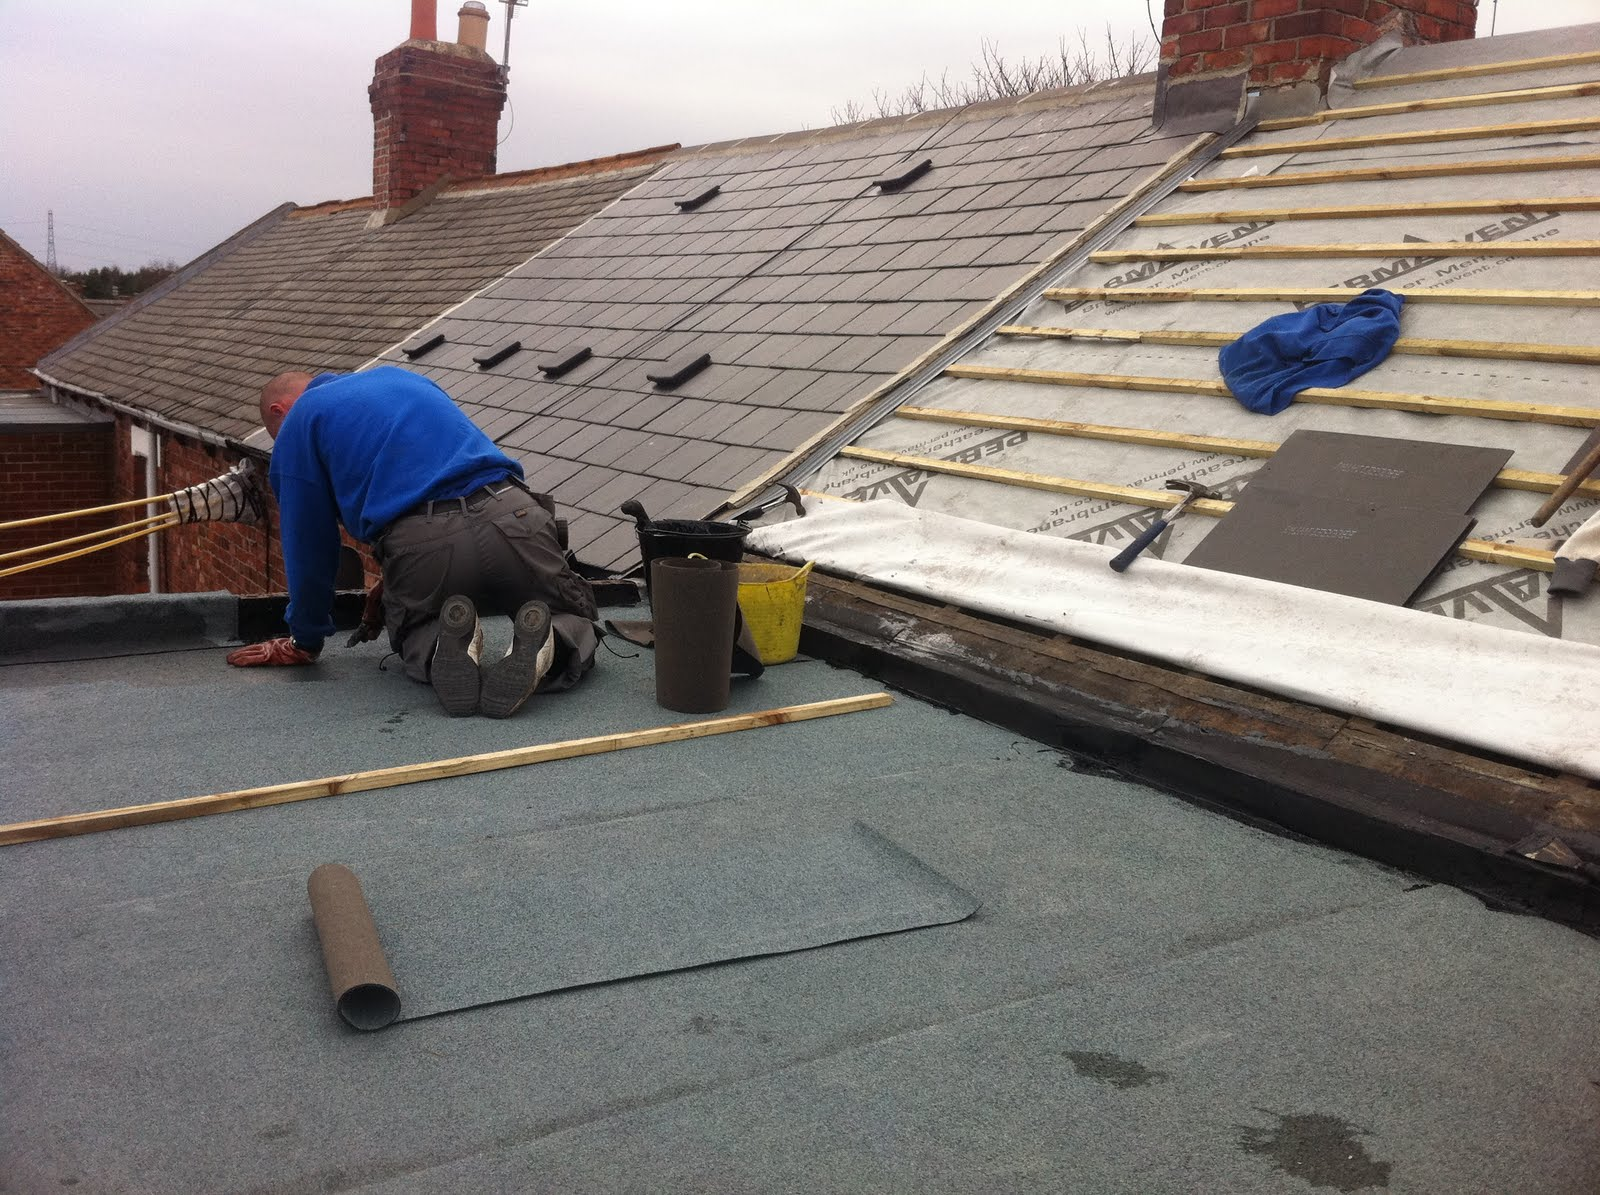 Flat Roof Re-felted & Main Roof Re-Tiled